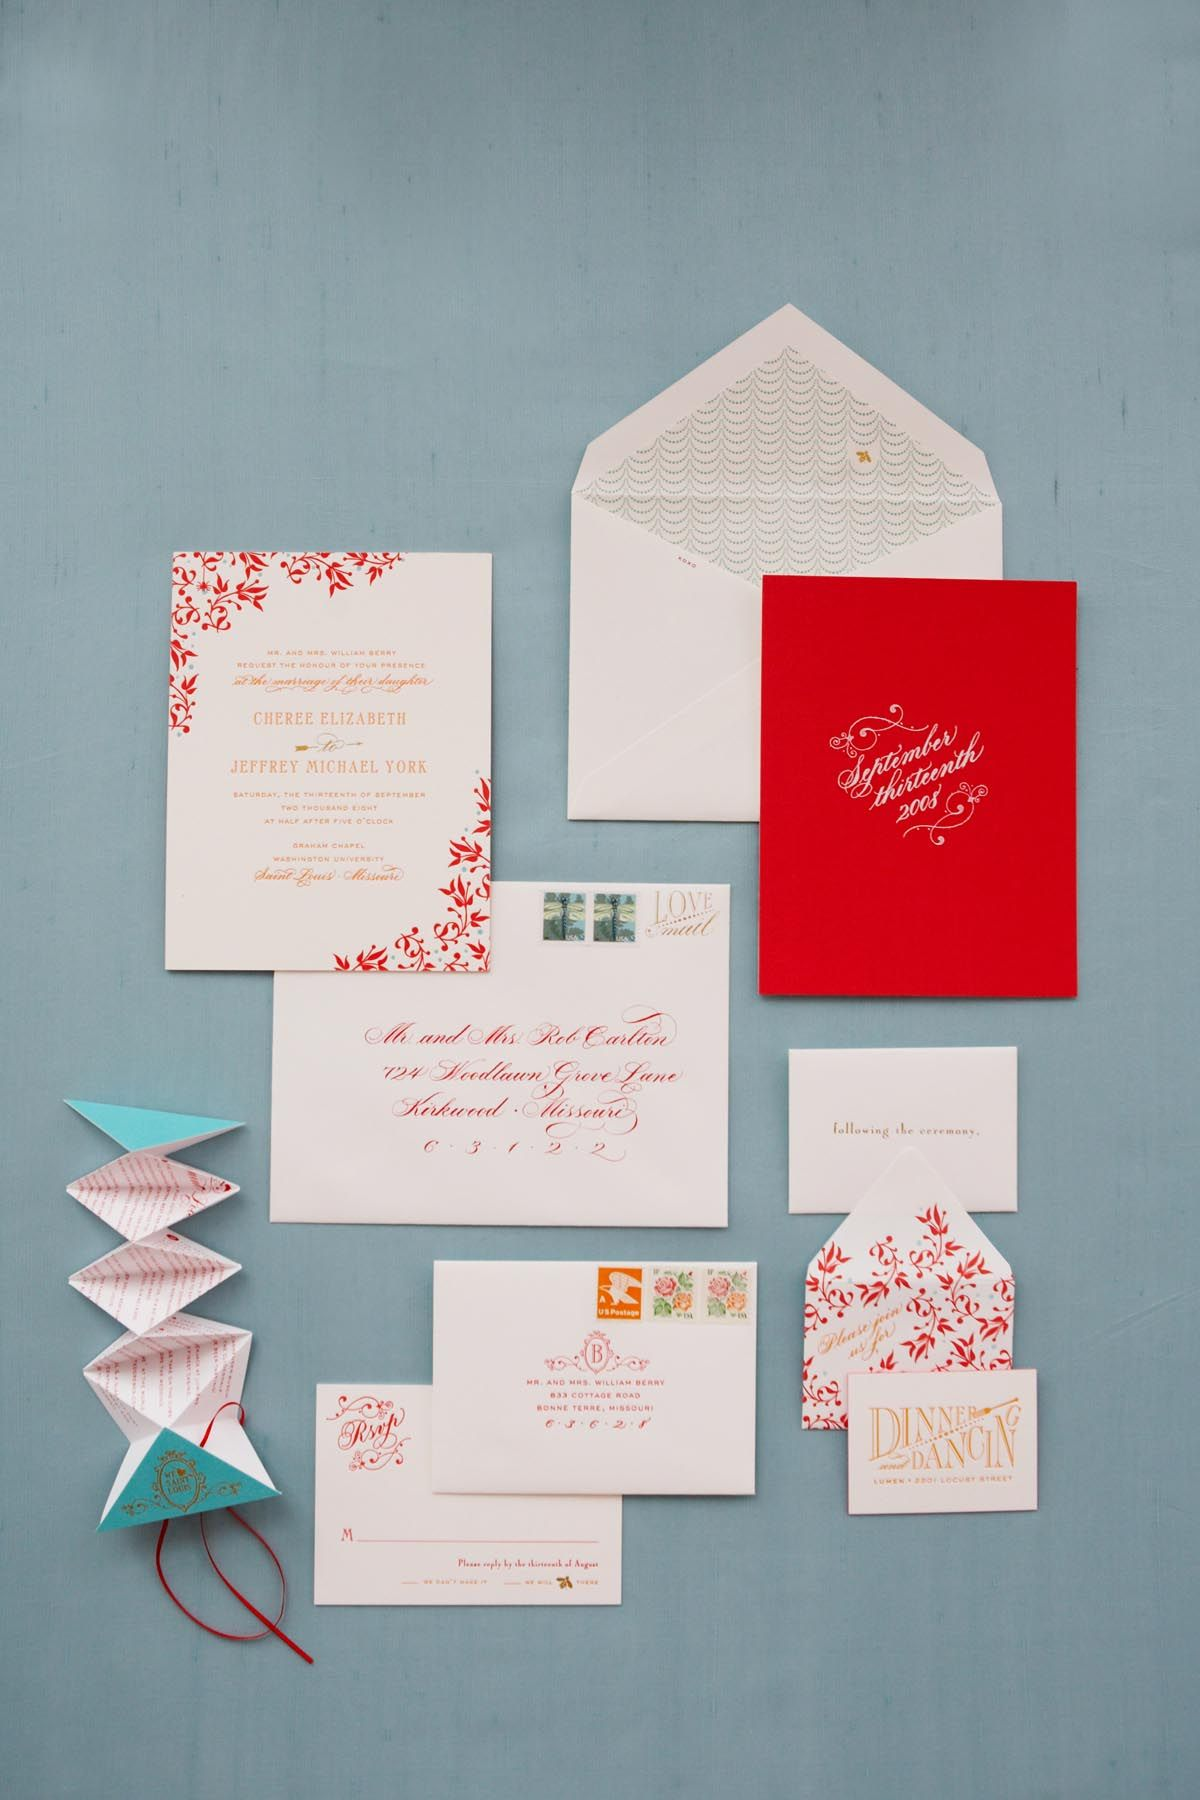 Modern Wedding Invitation Envelope Ideas Ornament - Invitations ...